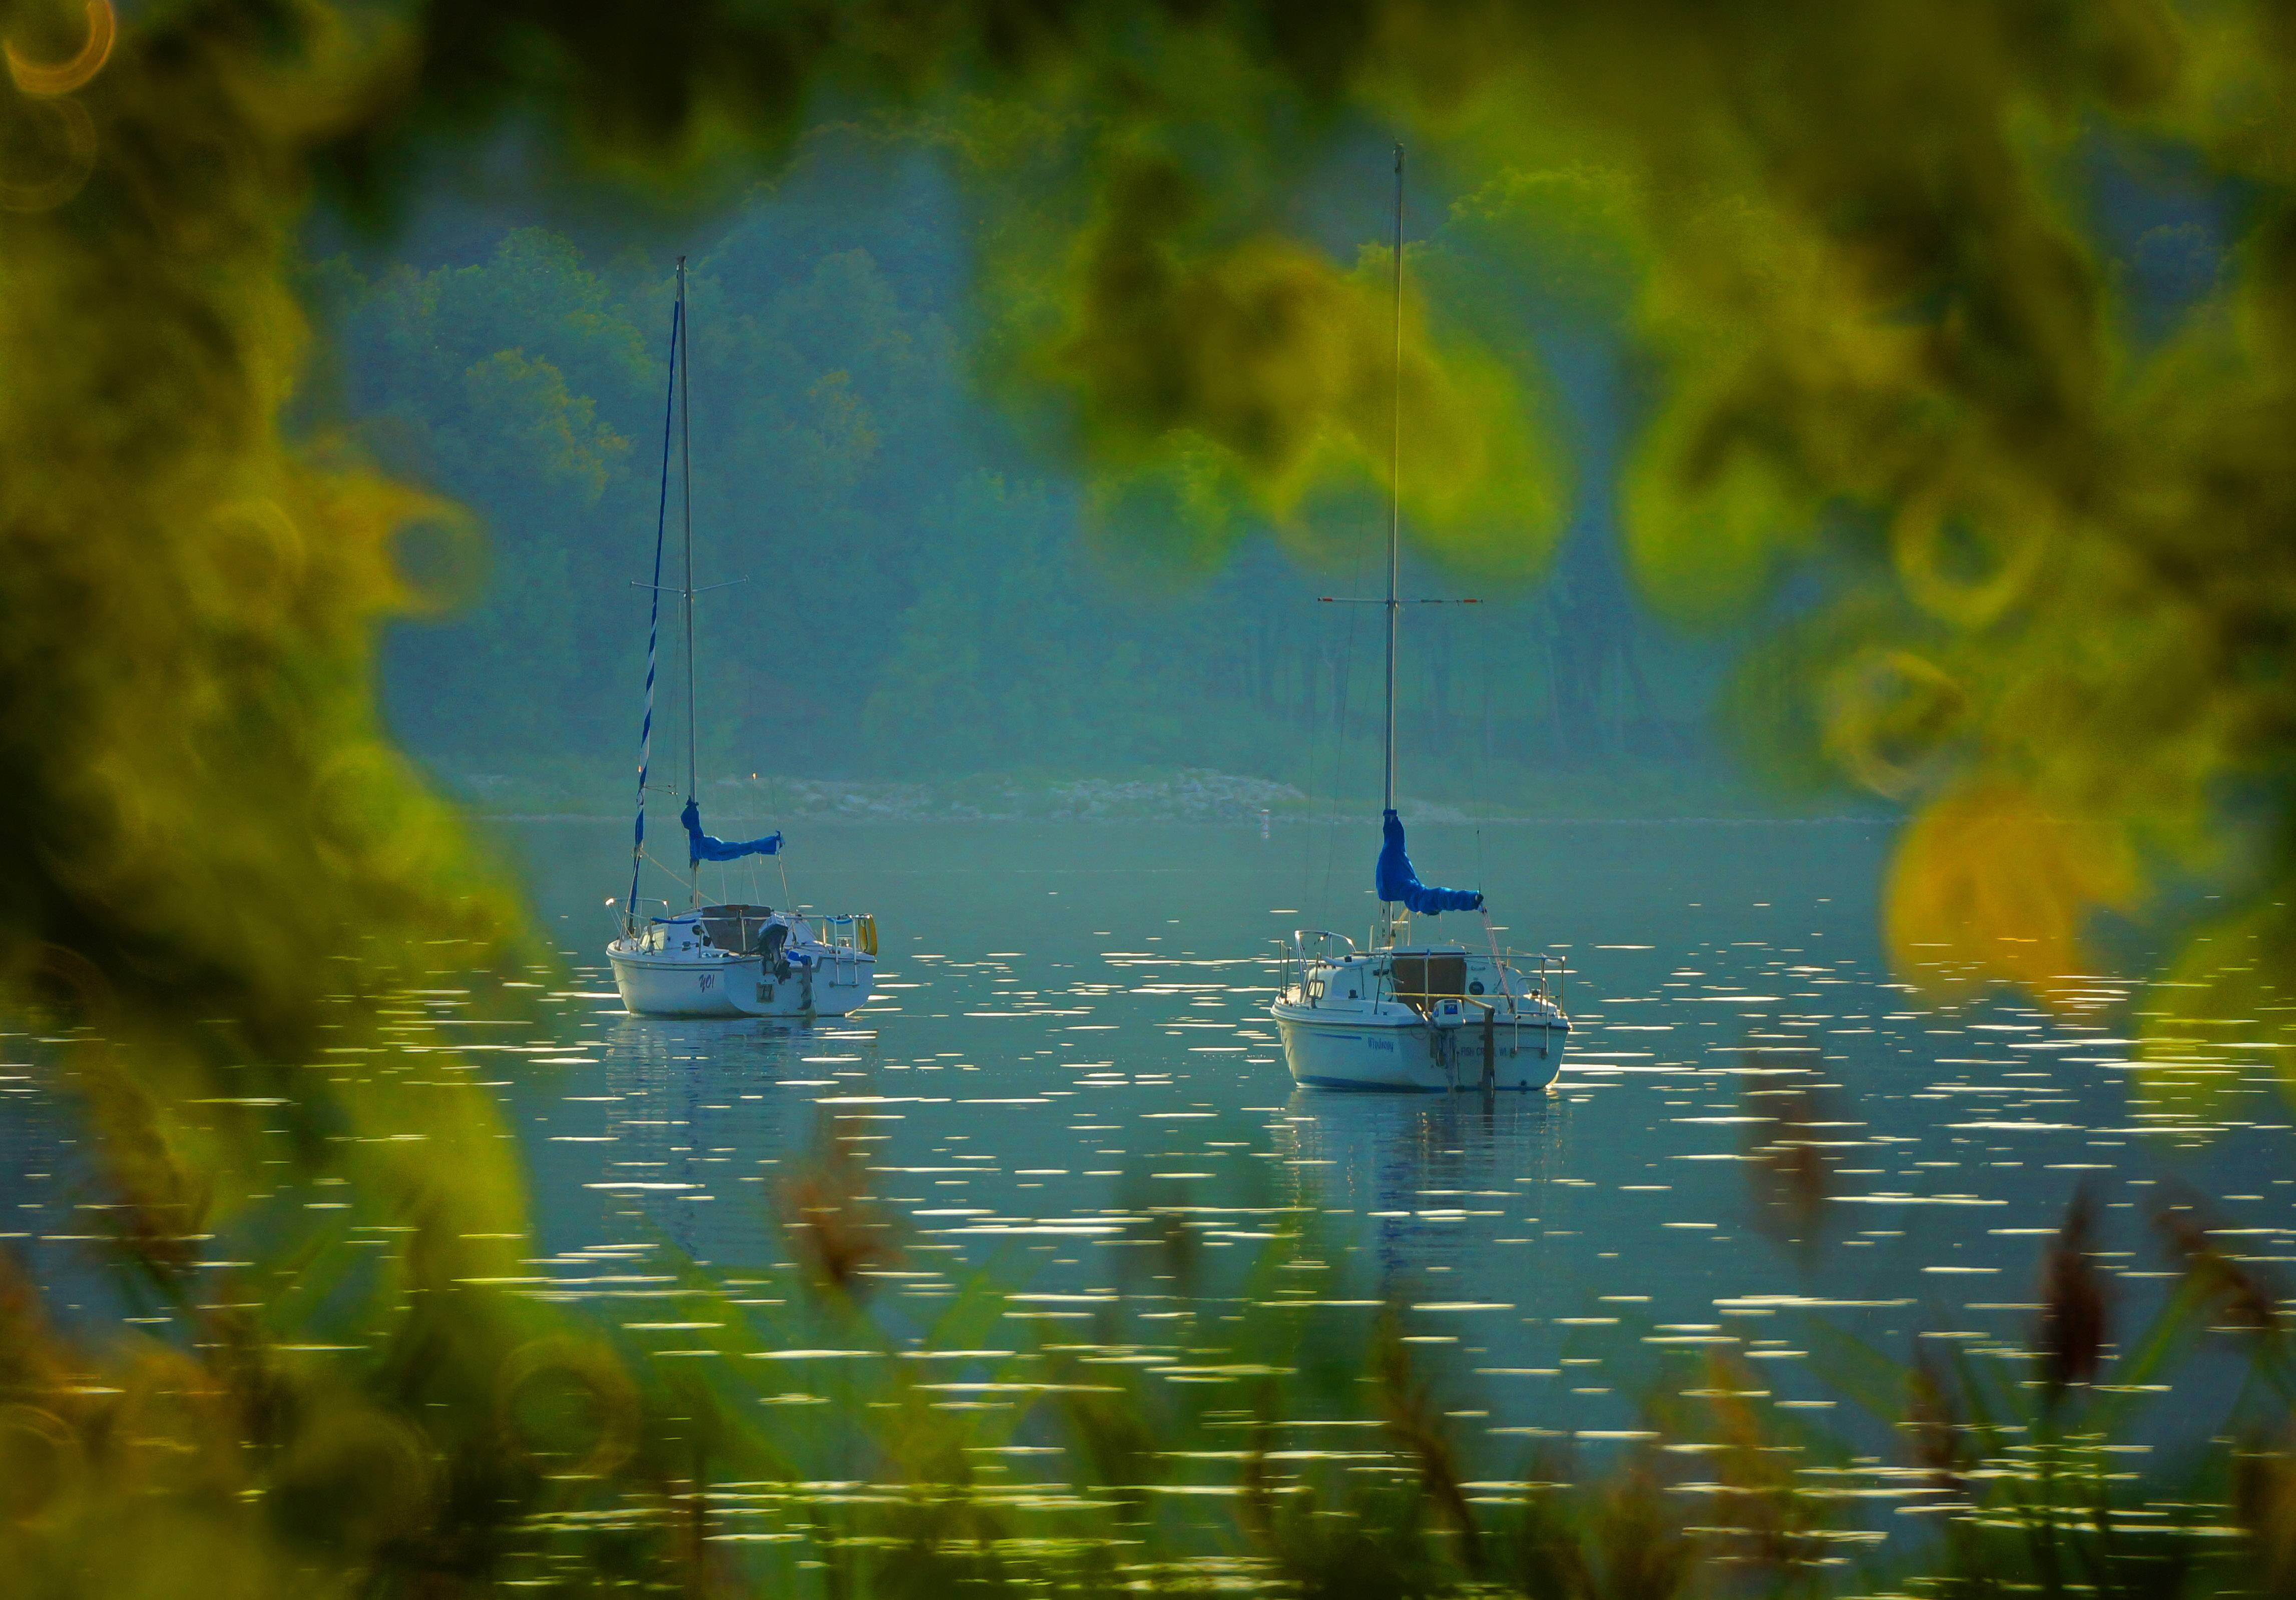 My wife and I took a summer trip to the village of Ephraim in Door County, Wis. We spotted these twin sailboats at sunset framed by the trees and reeds lining the shore of beautiful Eagle Harbor.